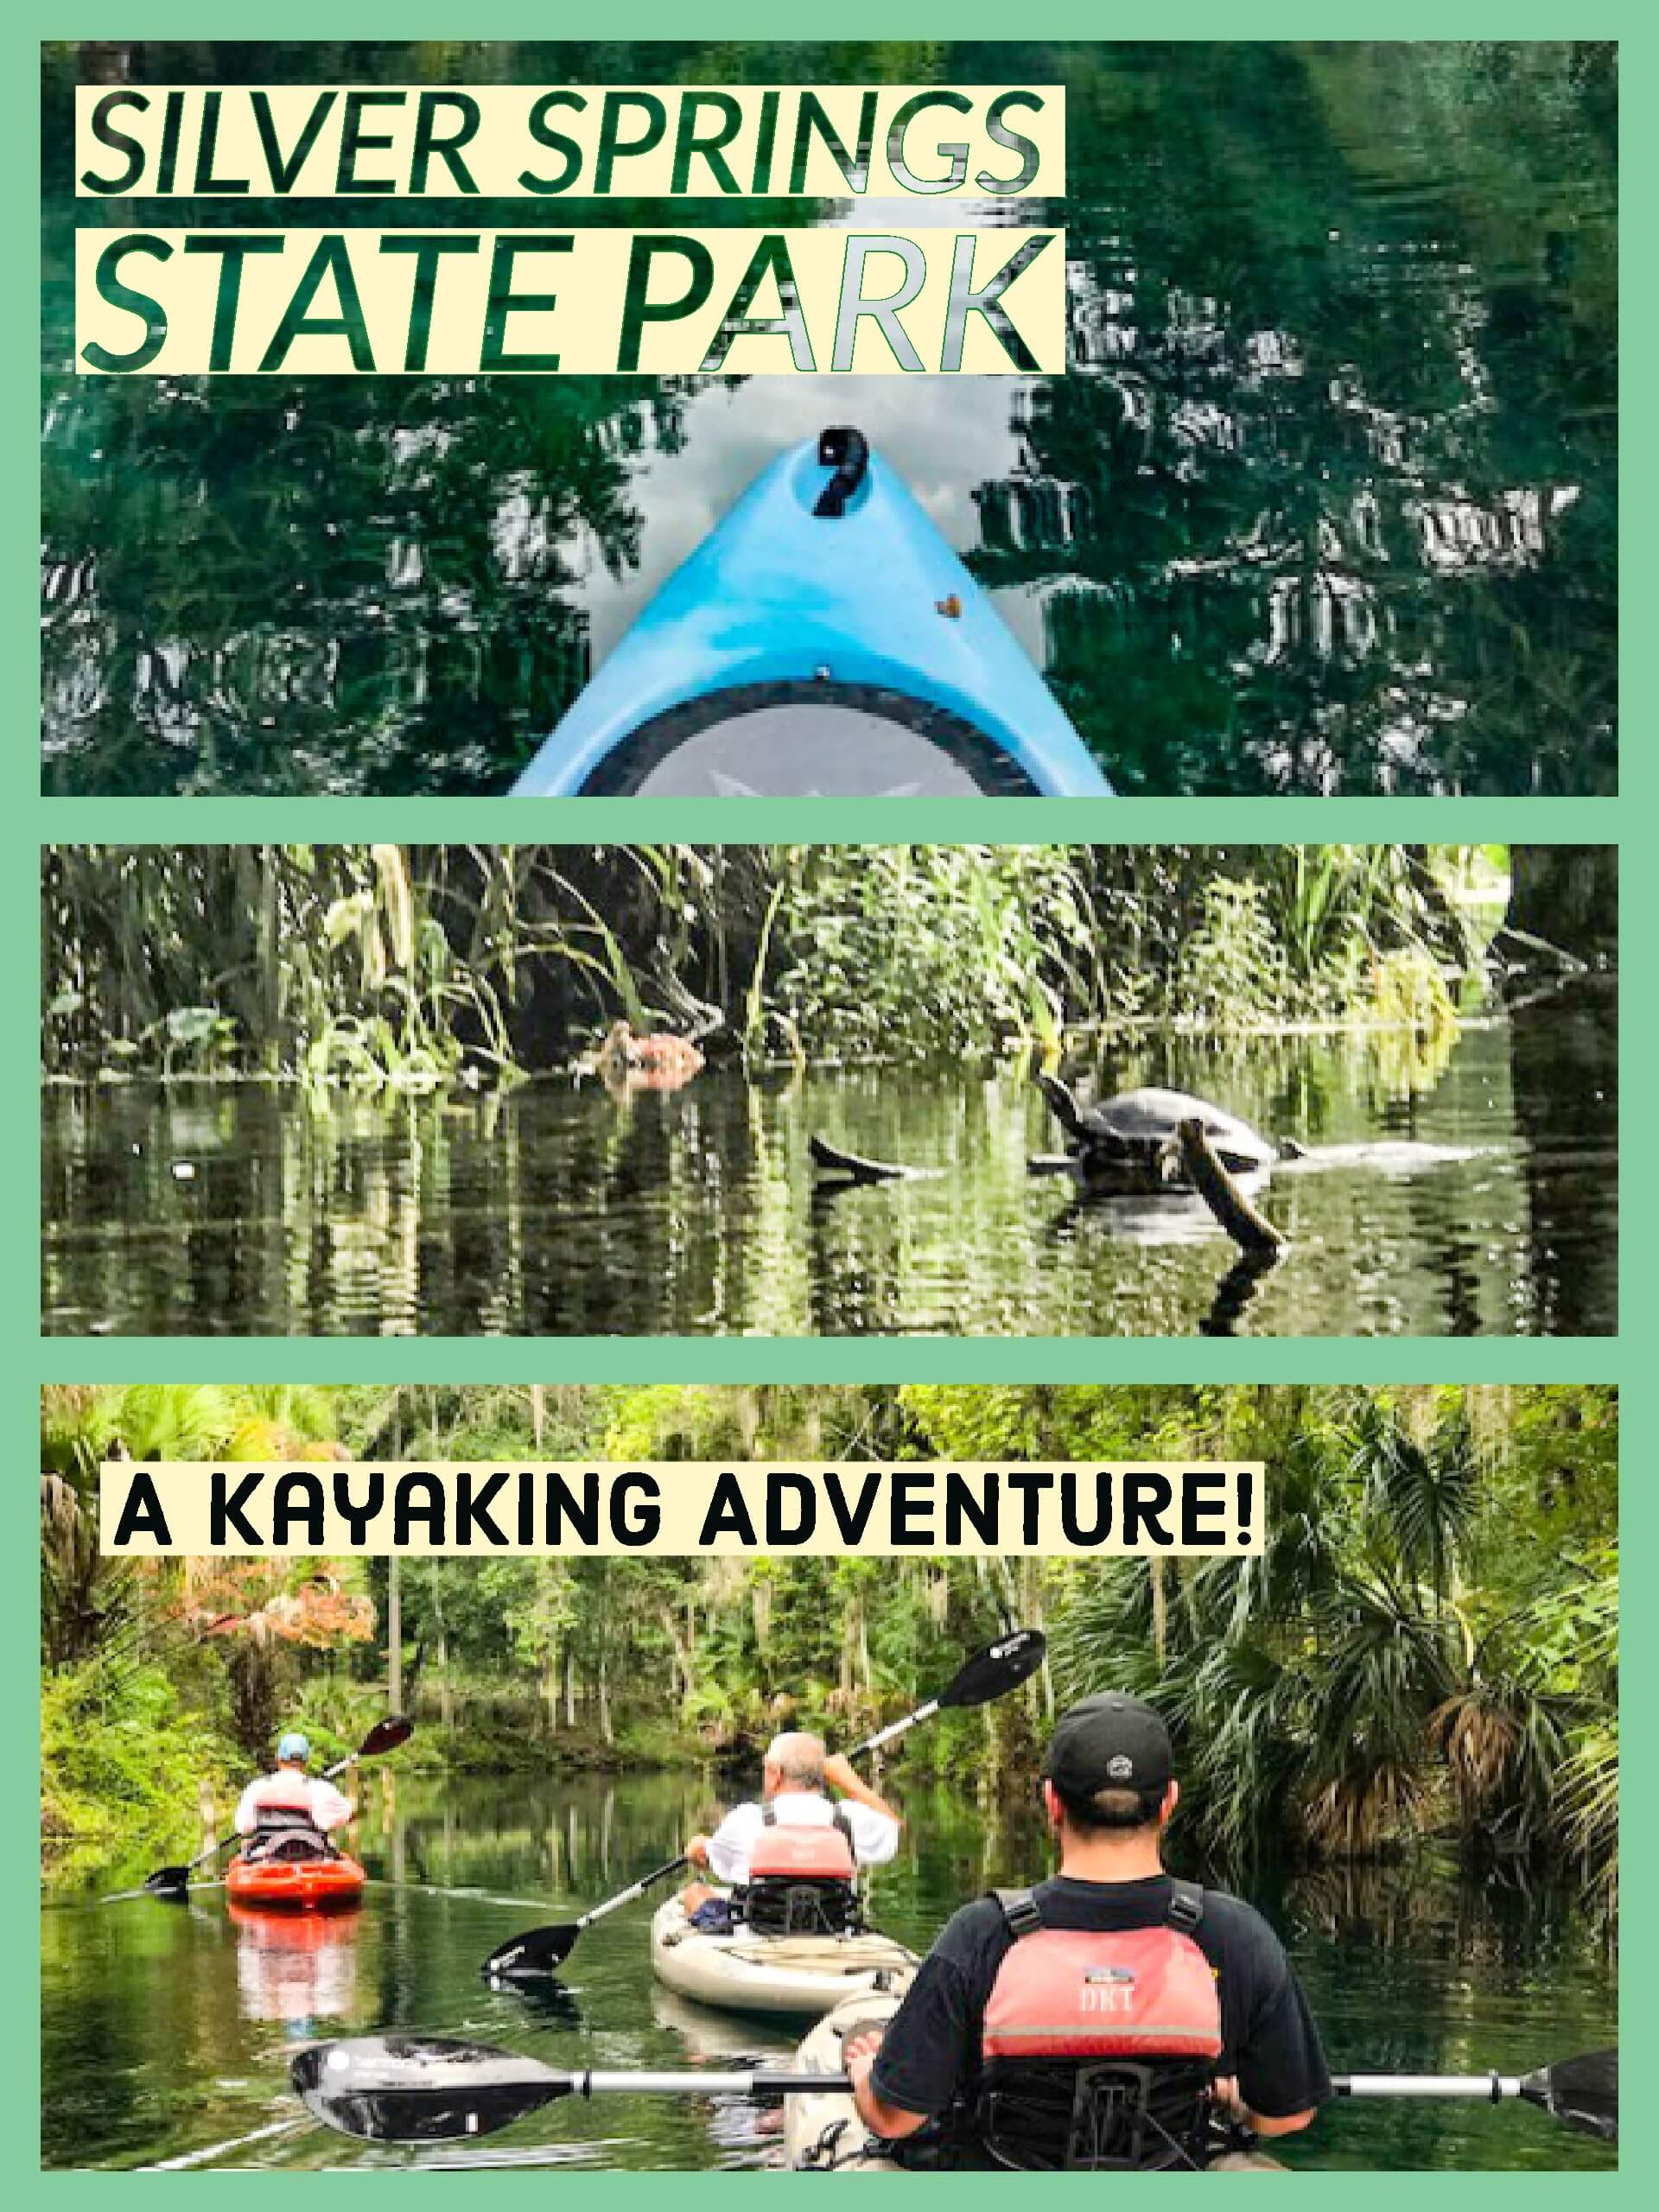 Silver Springs State Park, a Kayaking Adventure.